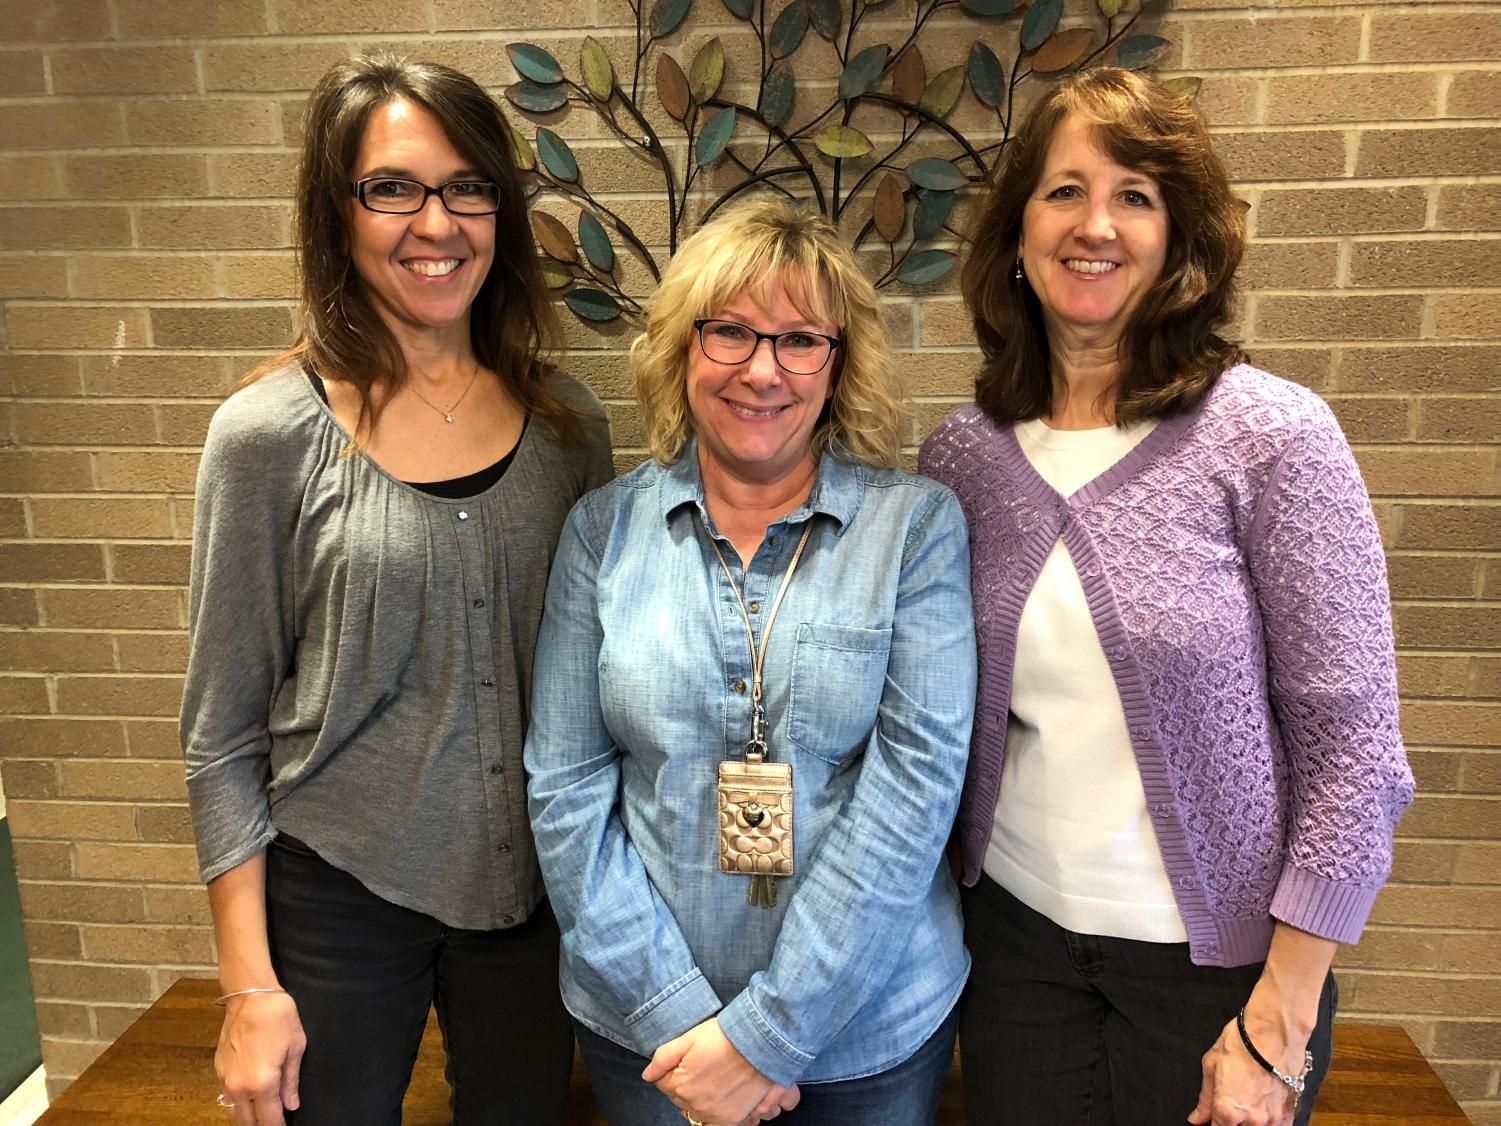 From left to right: Mrs. Campbell, Mrs. Rapson, and Mrs. Haneline.